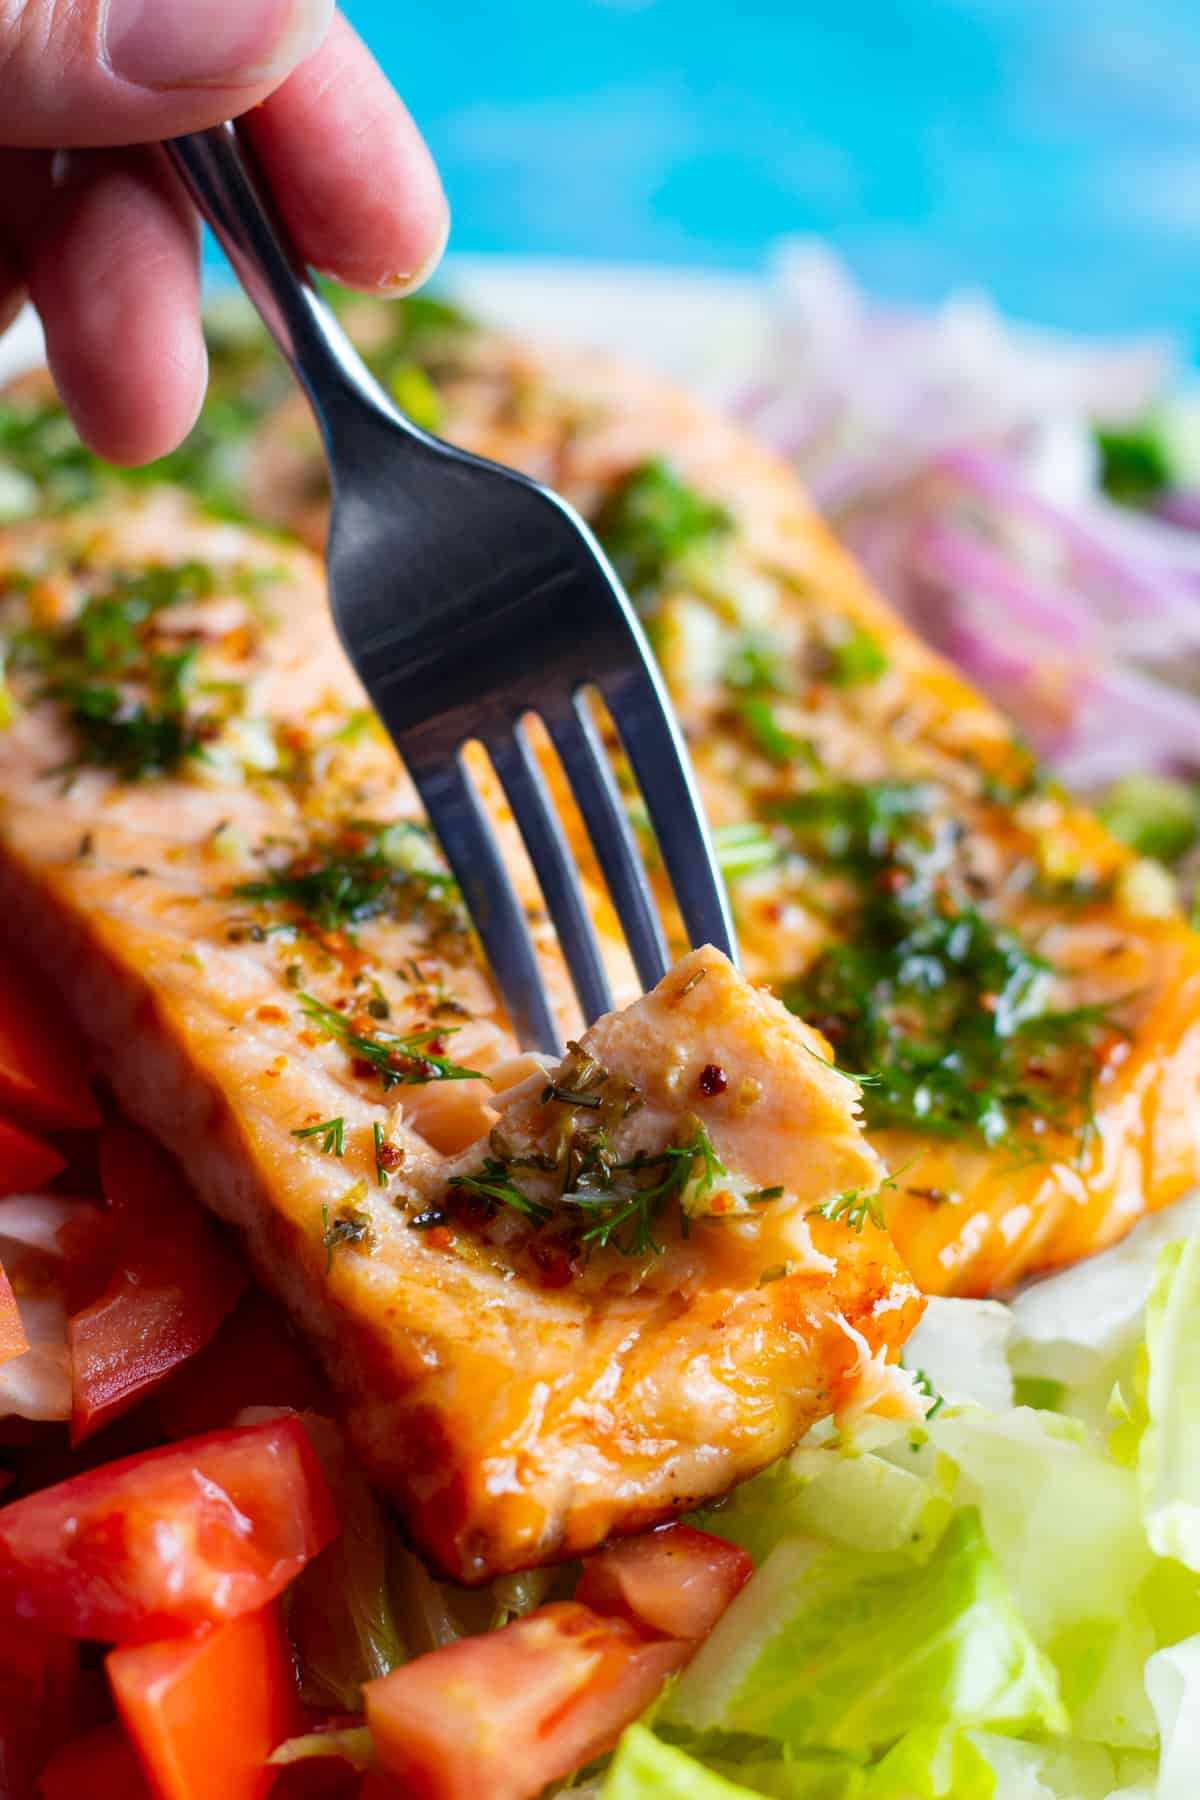 salmon on this salad is very flaky and perfectly cooked. It's topped with a lemon dill dressing.